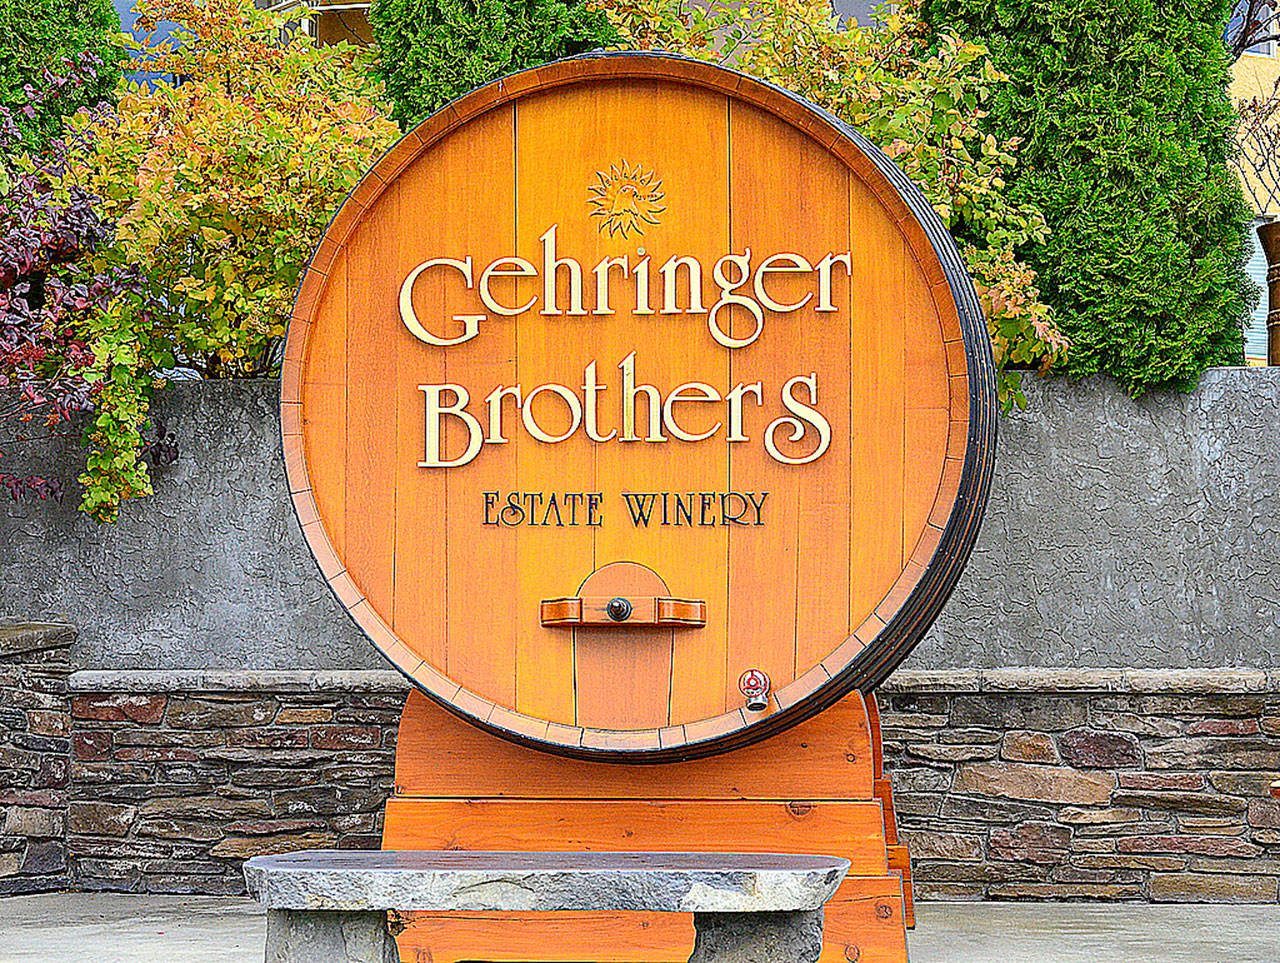 This large barrel serves as a greeting for visitors to Gehringer Brothers Estate Winery near Oliver, British Columbia. (Abra Bennett/Great Northwest Wine)